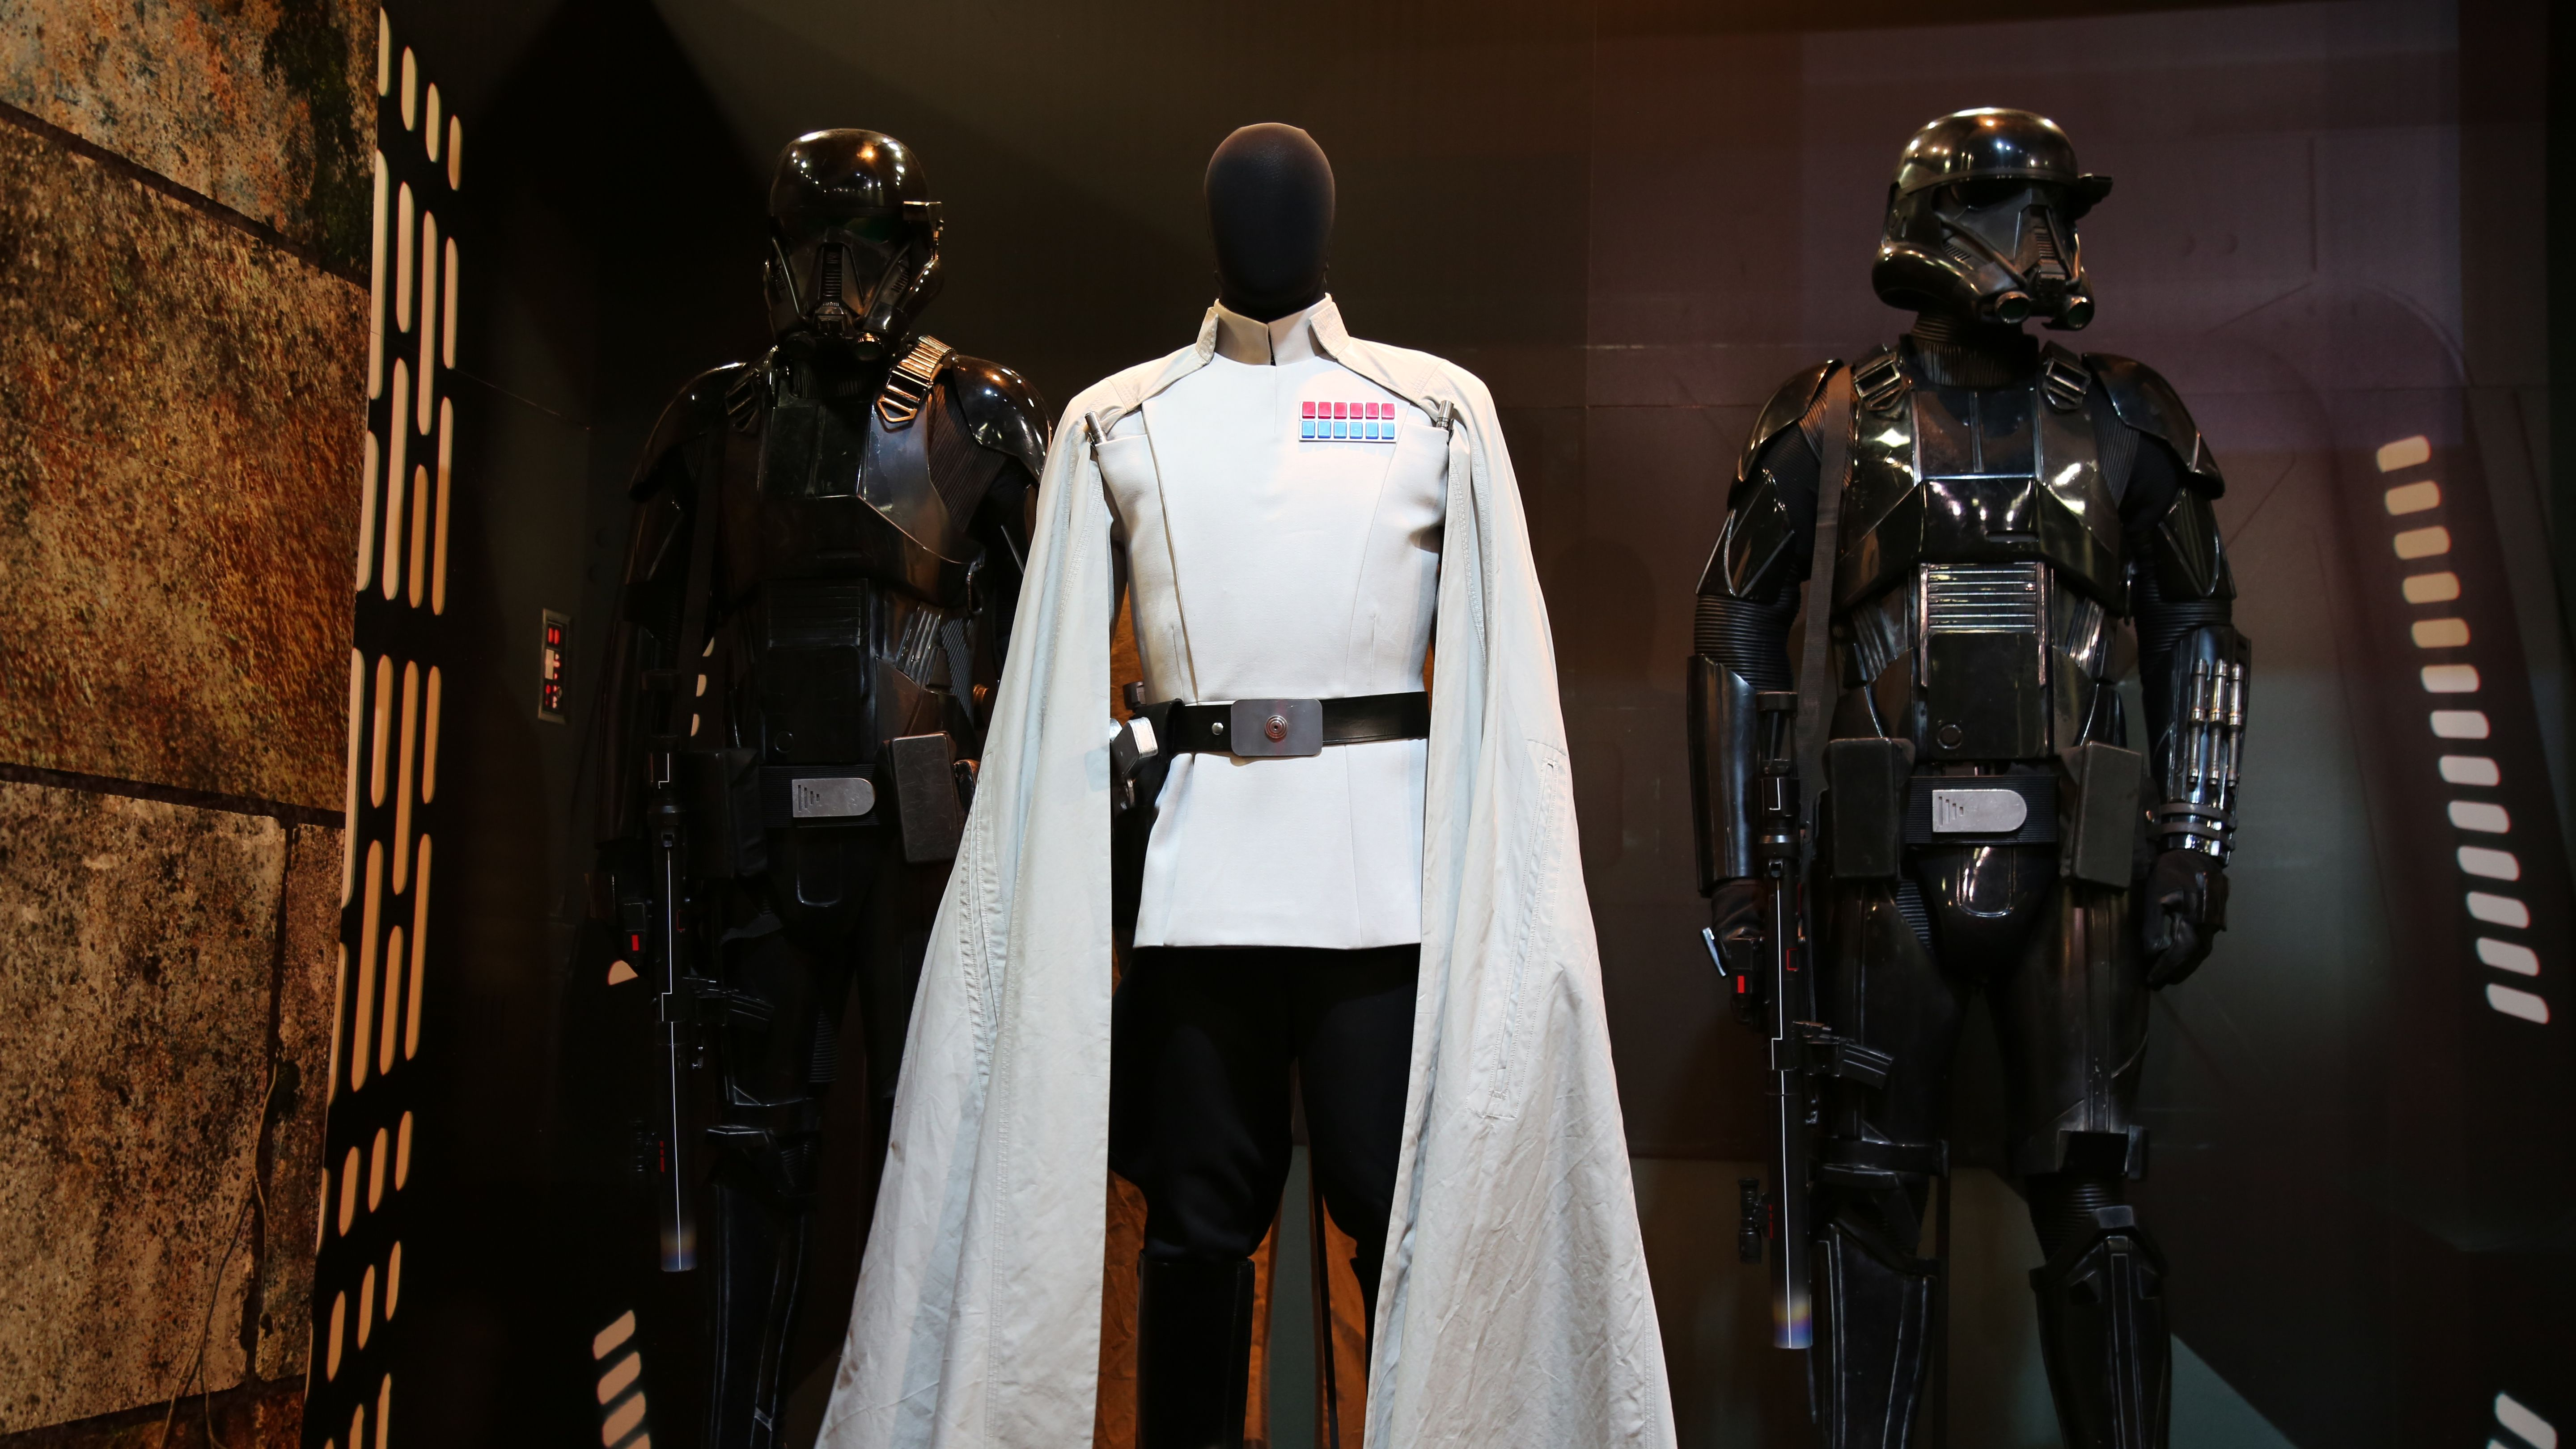 rogue one costumes from comic-con 2016   collider